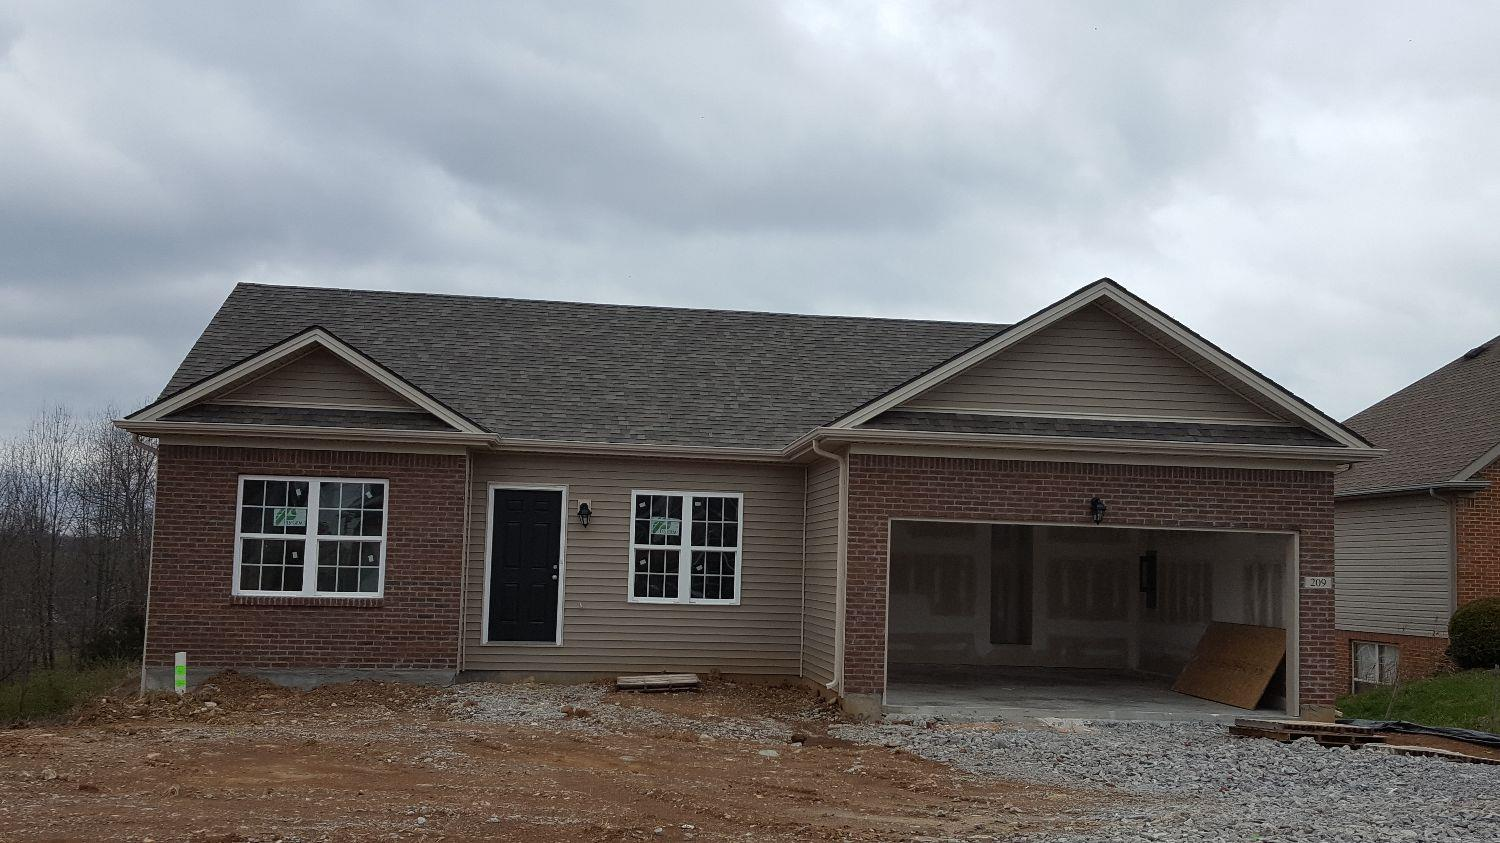 New%20Construction%20/%20Elkhorn%20Creek%20at%20the%20Colony%20offered%20for%20the%20first%20time!%20%20The%20Abbeywood%20Colony%20plan%20is%20a%20beautiful%20ranch%20home%20with%203%20Bedrooms,%202%20Full%20Baths%20and%20a%202%20Car%20Garage.%20%20Other%20amenities%20include%20garage%20with%20opener%20and%20remote%20controls,%20rounded%20corners,%20executive%20height%20vanities,%20vaulted%20ceilings,%20dimensional%20shingles.